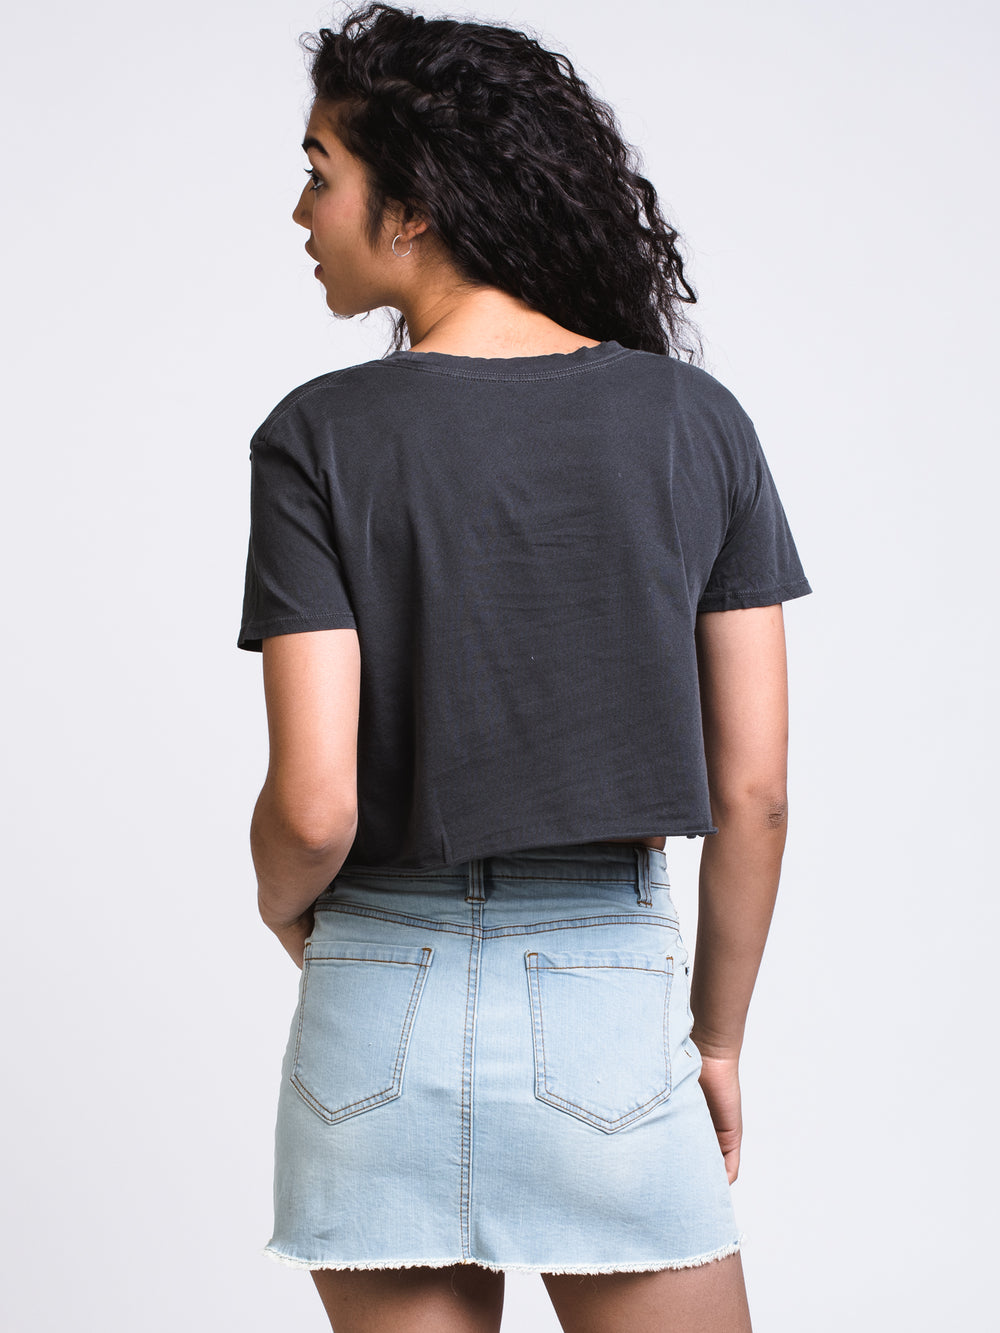 WOMENS DAYLIGHT FADES TEE - BLACK